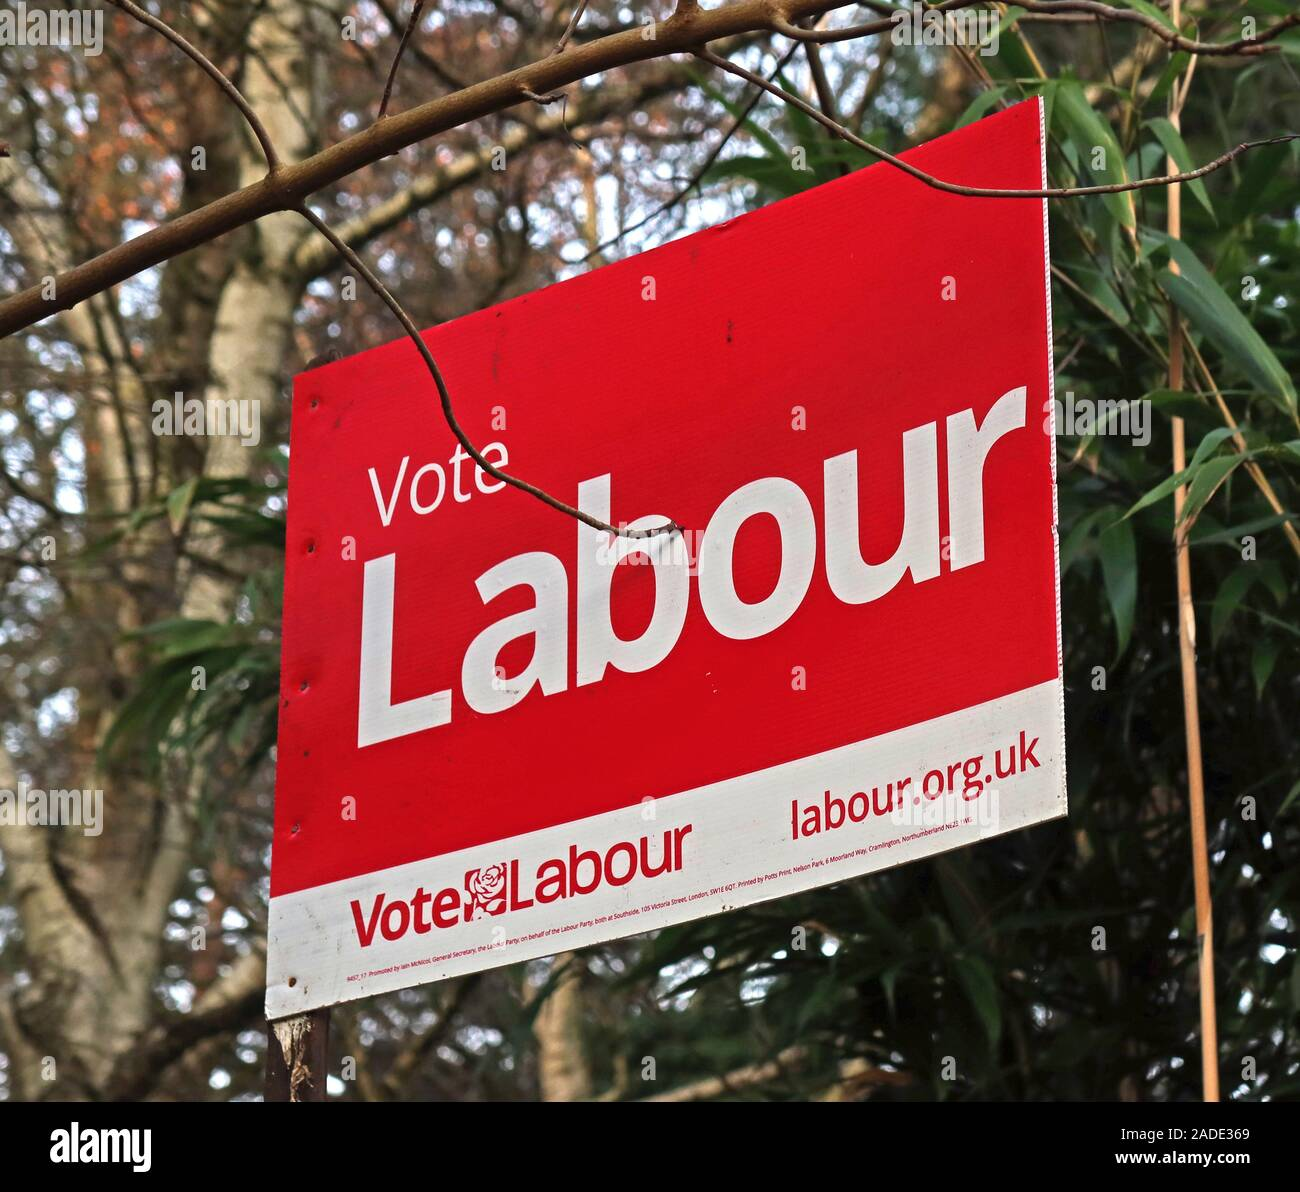 GoTonySmith,HotpixUK,@HotpixUK,voting,constituency,Warrington constituency,England,English,support,supporters,Westminster,vote,General election party political sign,Lymm Village,South Warrington,Cheshire,North West,WA4,Vote Labour,Labour,Socialist,Socialism,red,VoteLabour,in a garden,garden,front garden,rear garden,back garden,red white,WA13,Grappenhall,Stockton Heath,Labour supporter,Labour support,stronghold,activist,swing seat,MP,seat